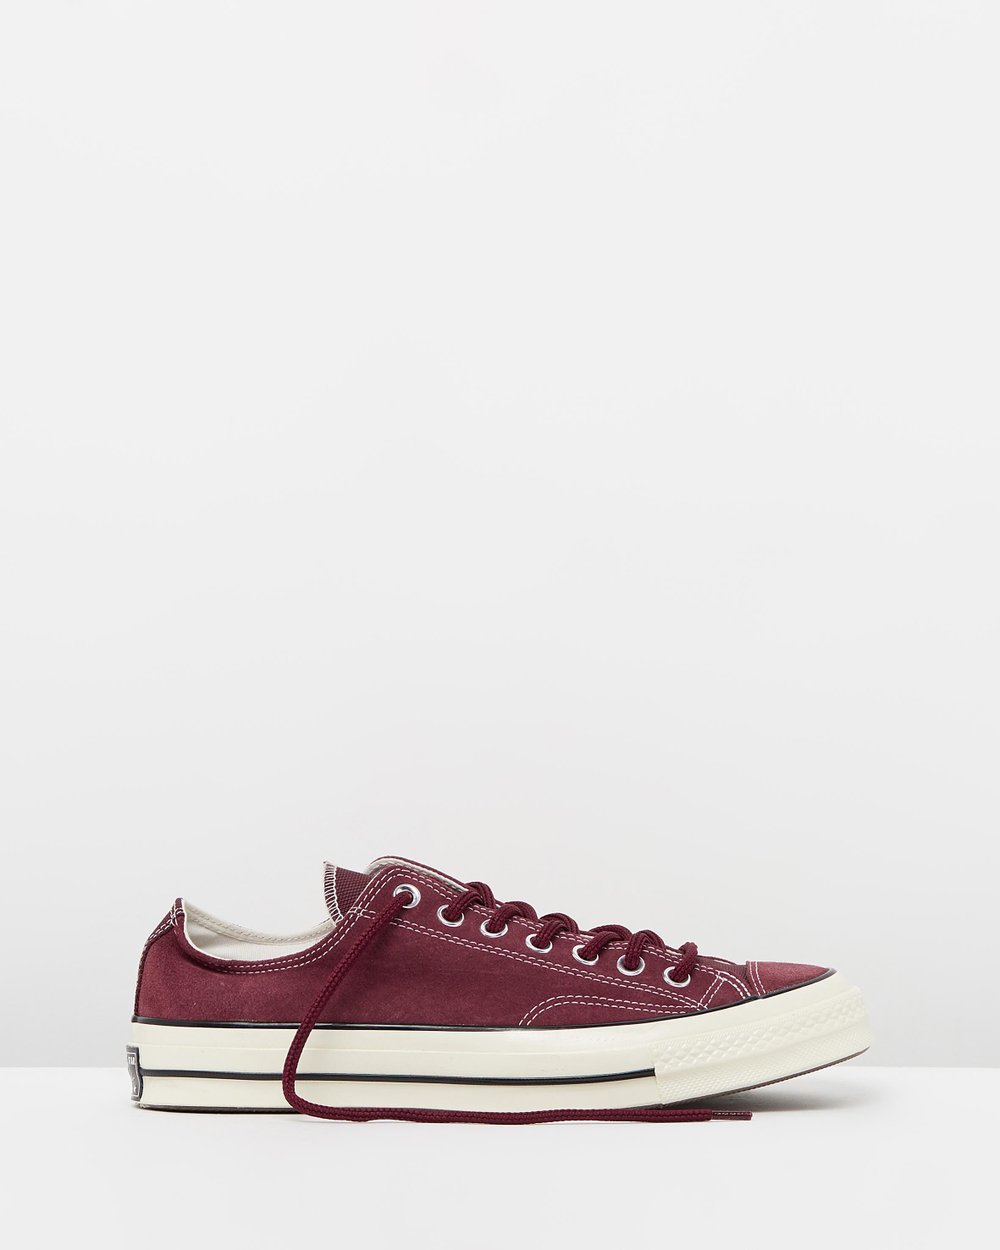 aec4cae3332 Chuck Taylor All Star 70 Base Camp Suede - Unisex by Converse Online ...